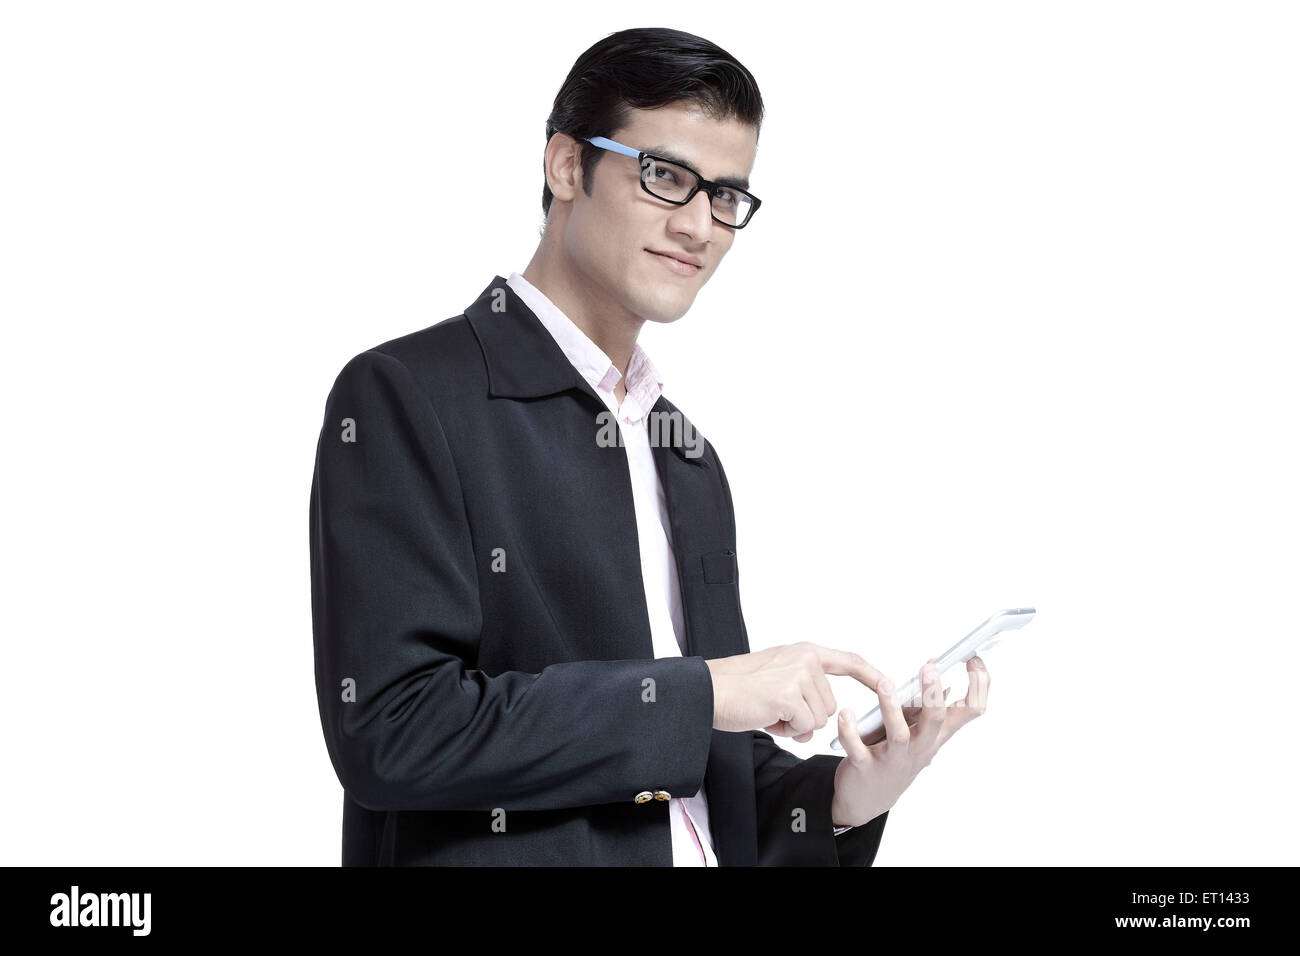 Man Handling Tablet India Asia MR#790E - Stock Image